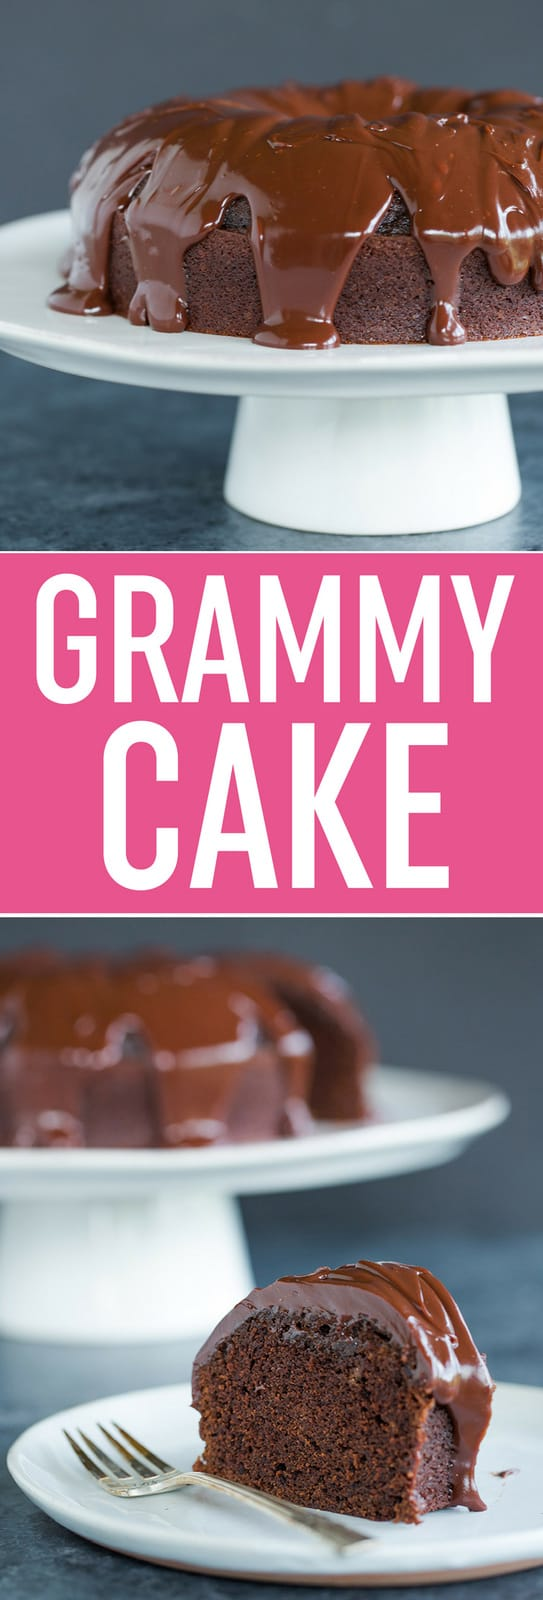 Grammy Cake - This old-fashioned chocolate cake is baked in a tube pan, comes out extremely moist, and is covered in decadent chocolate ganache.